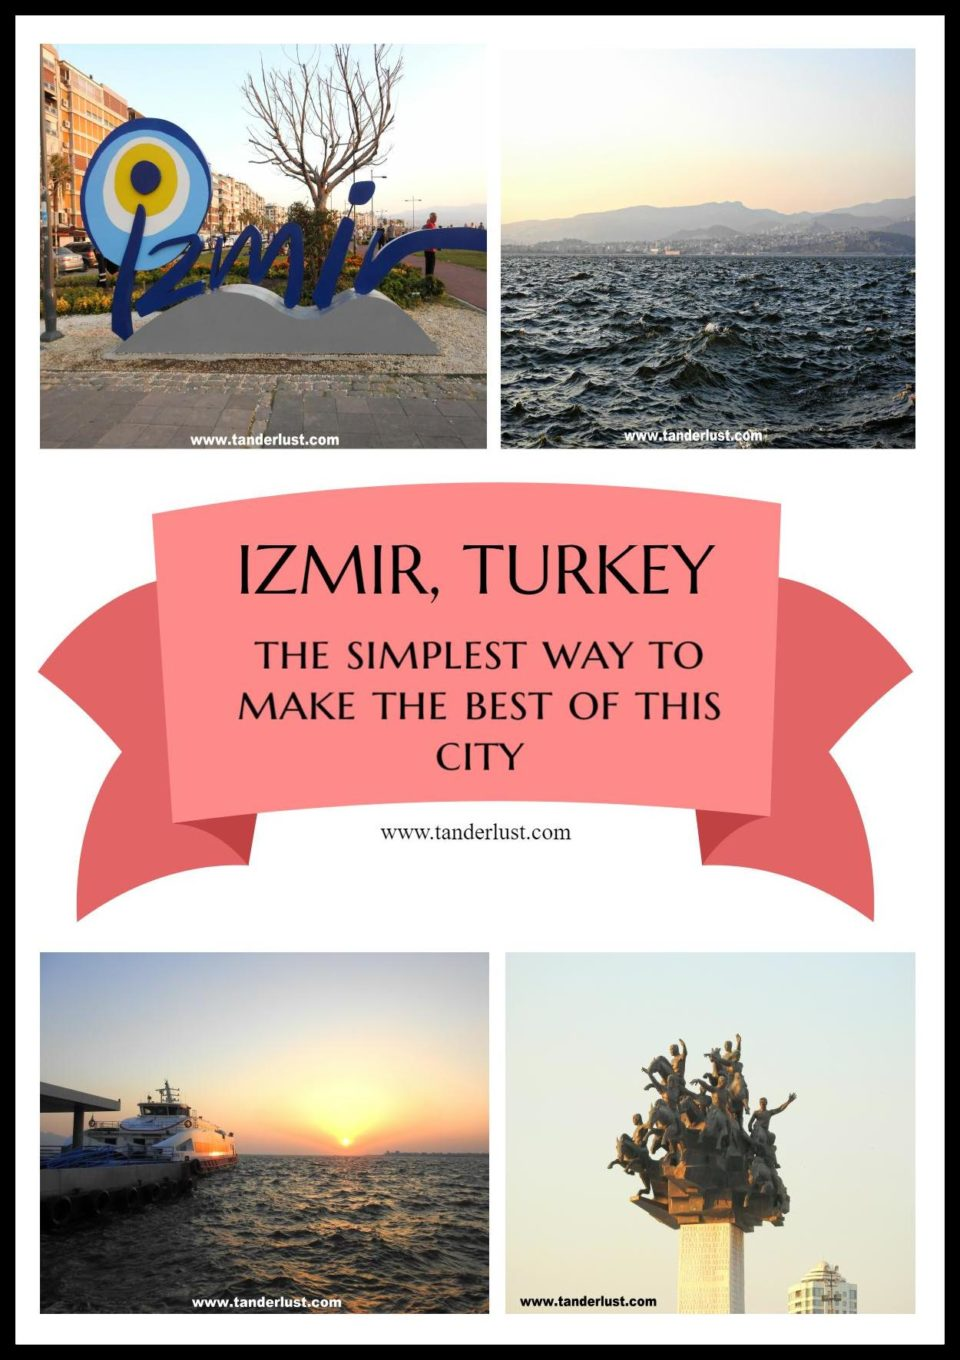 izmir-travel-guide